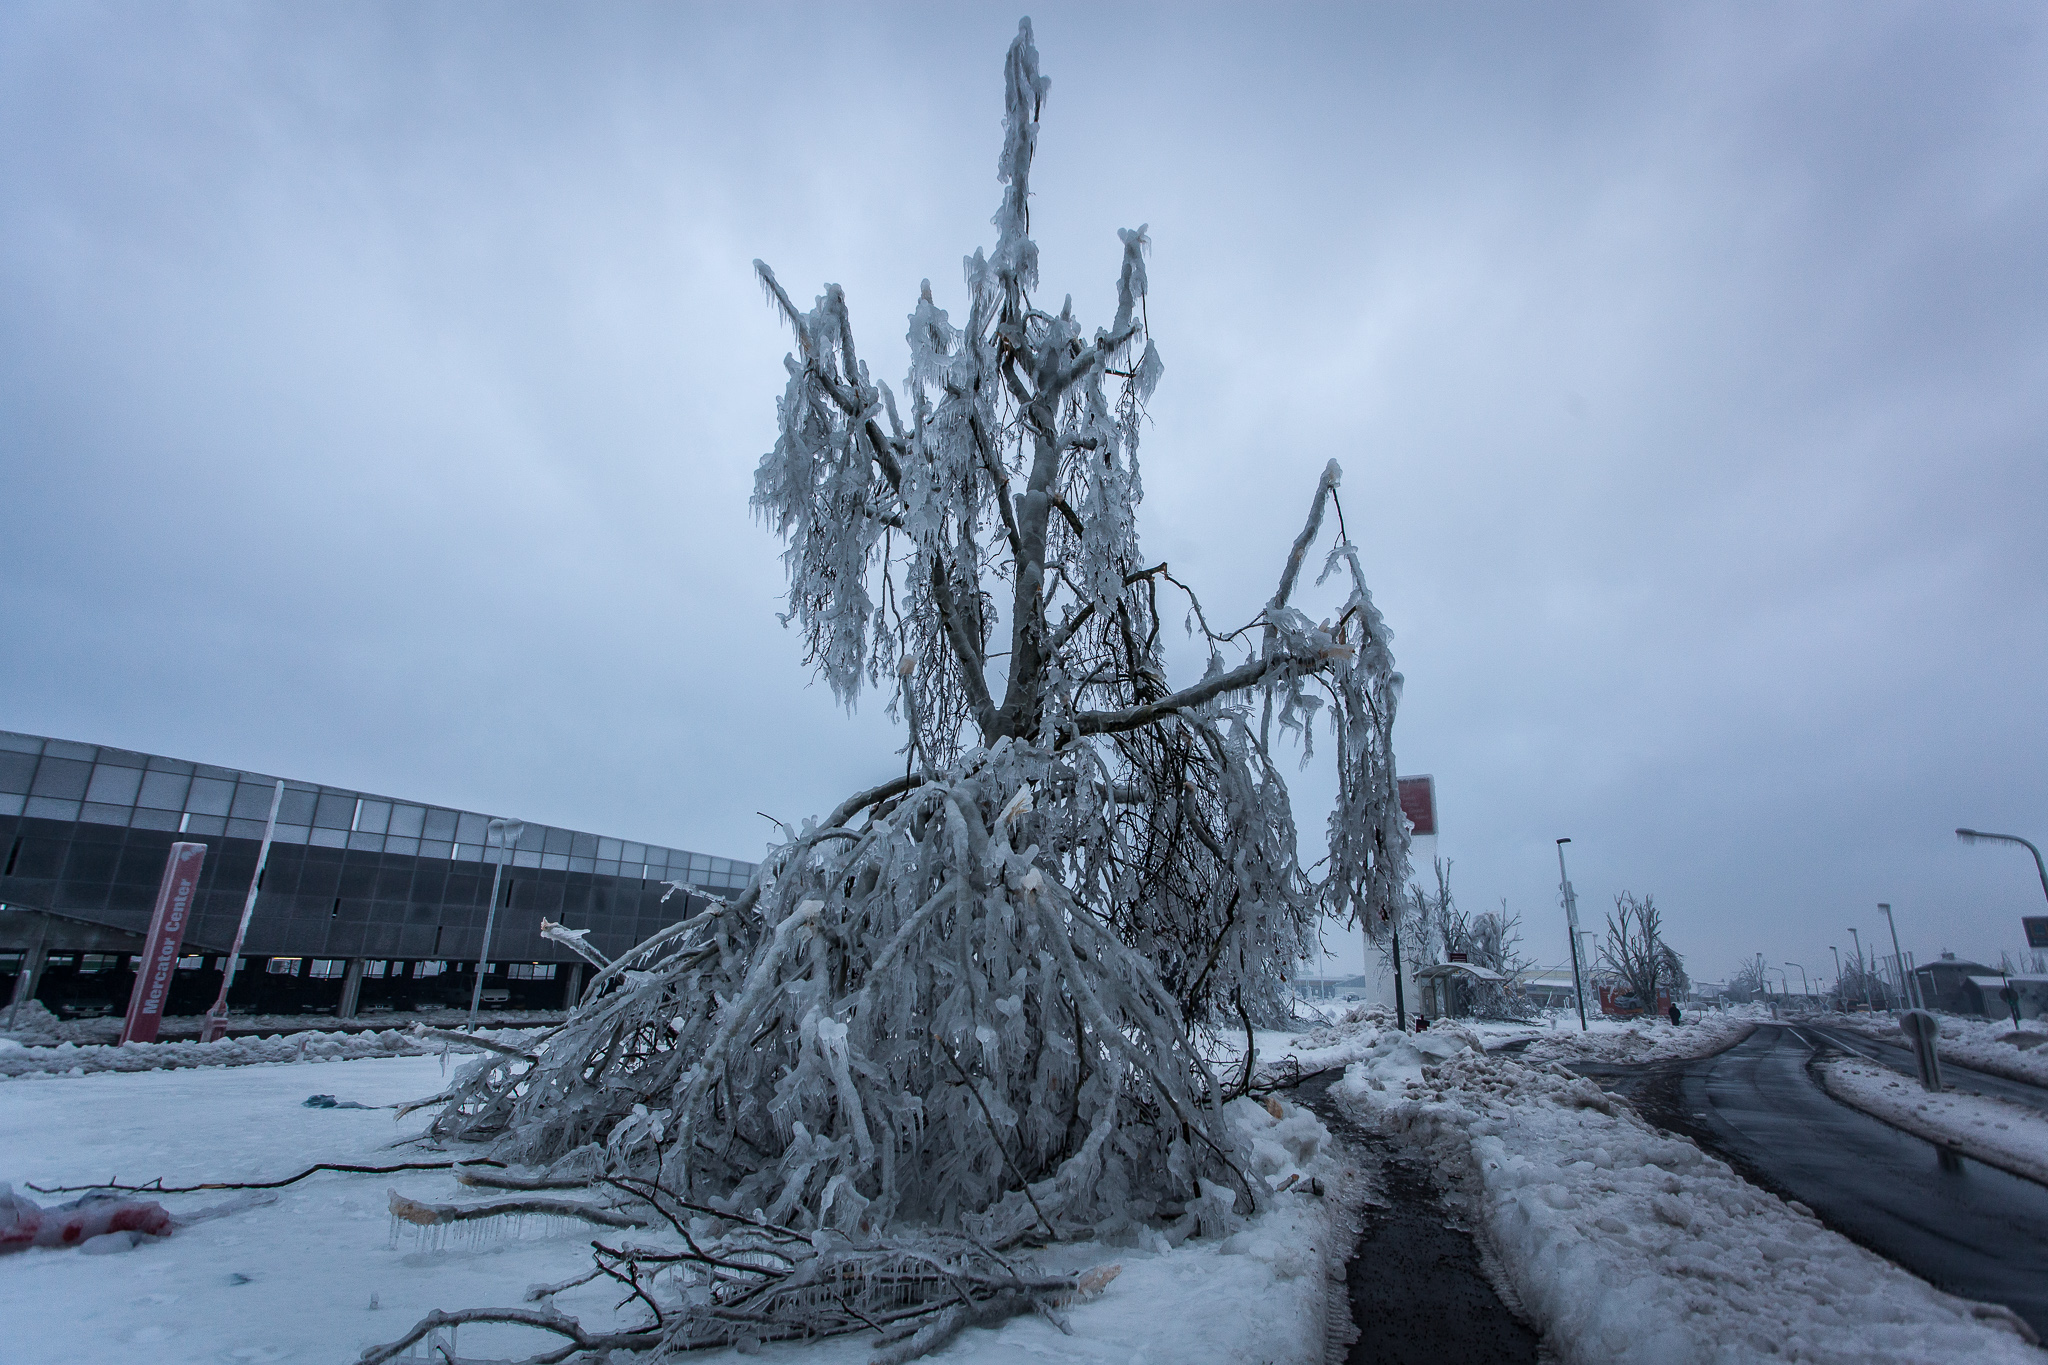 Almost completely broken tree whose branches are covered with at least 5 centimetres of ice.